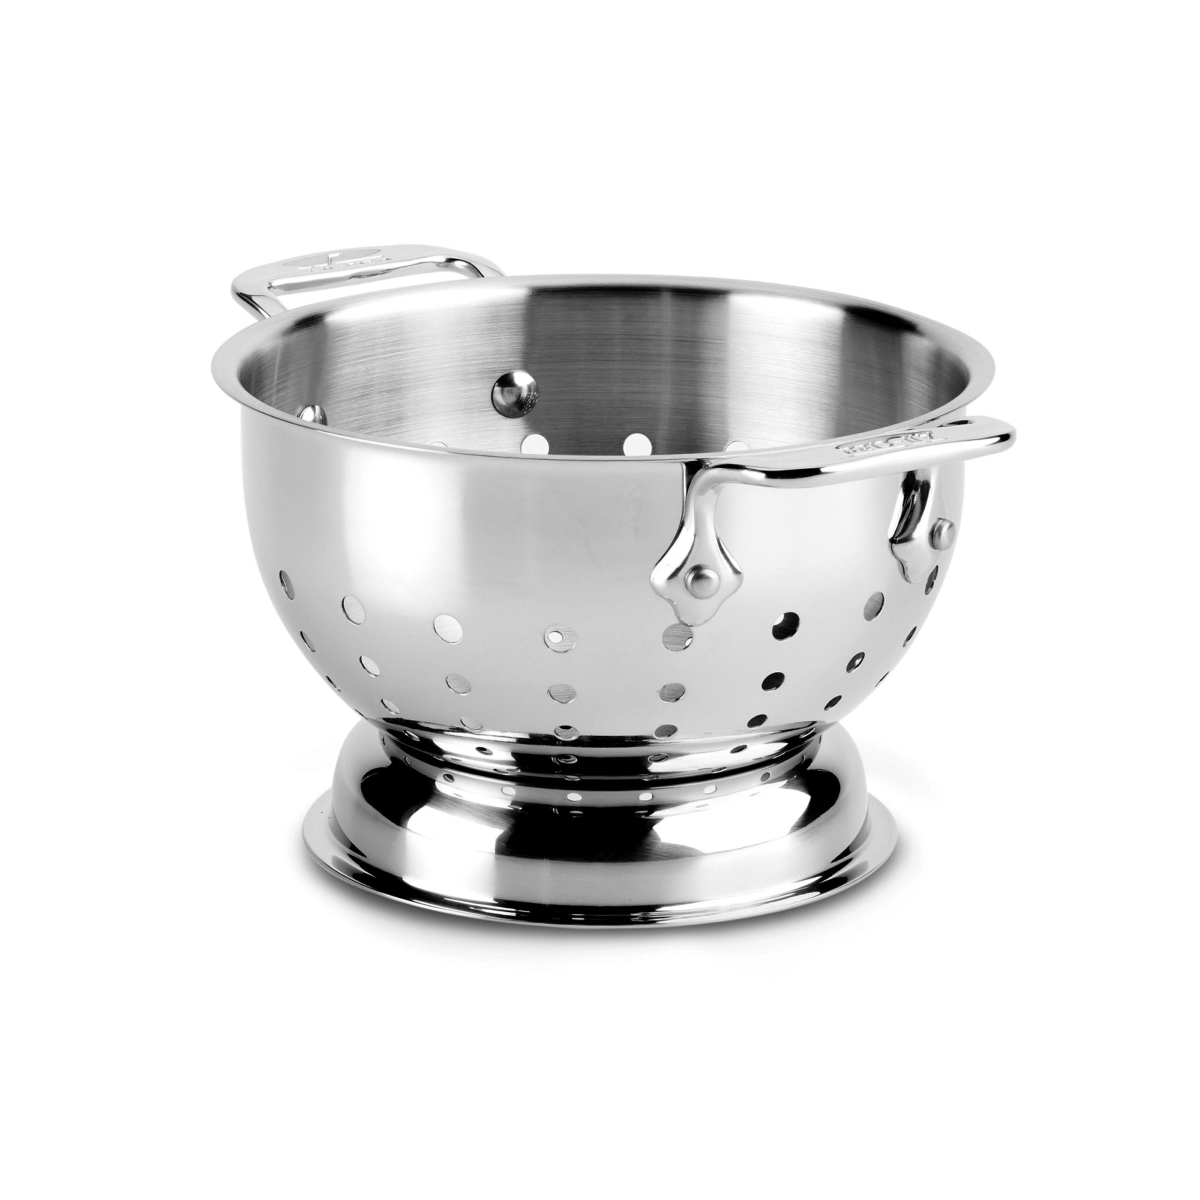 All-Clad 1.5-quart Stainless Steel Colander